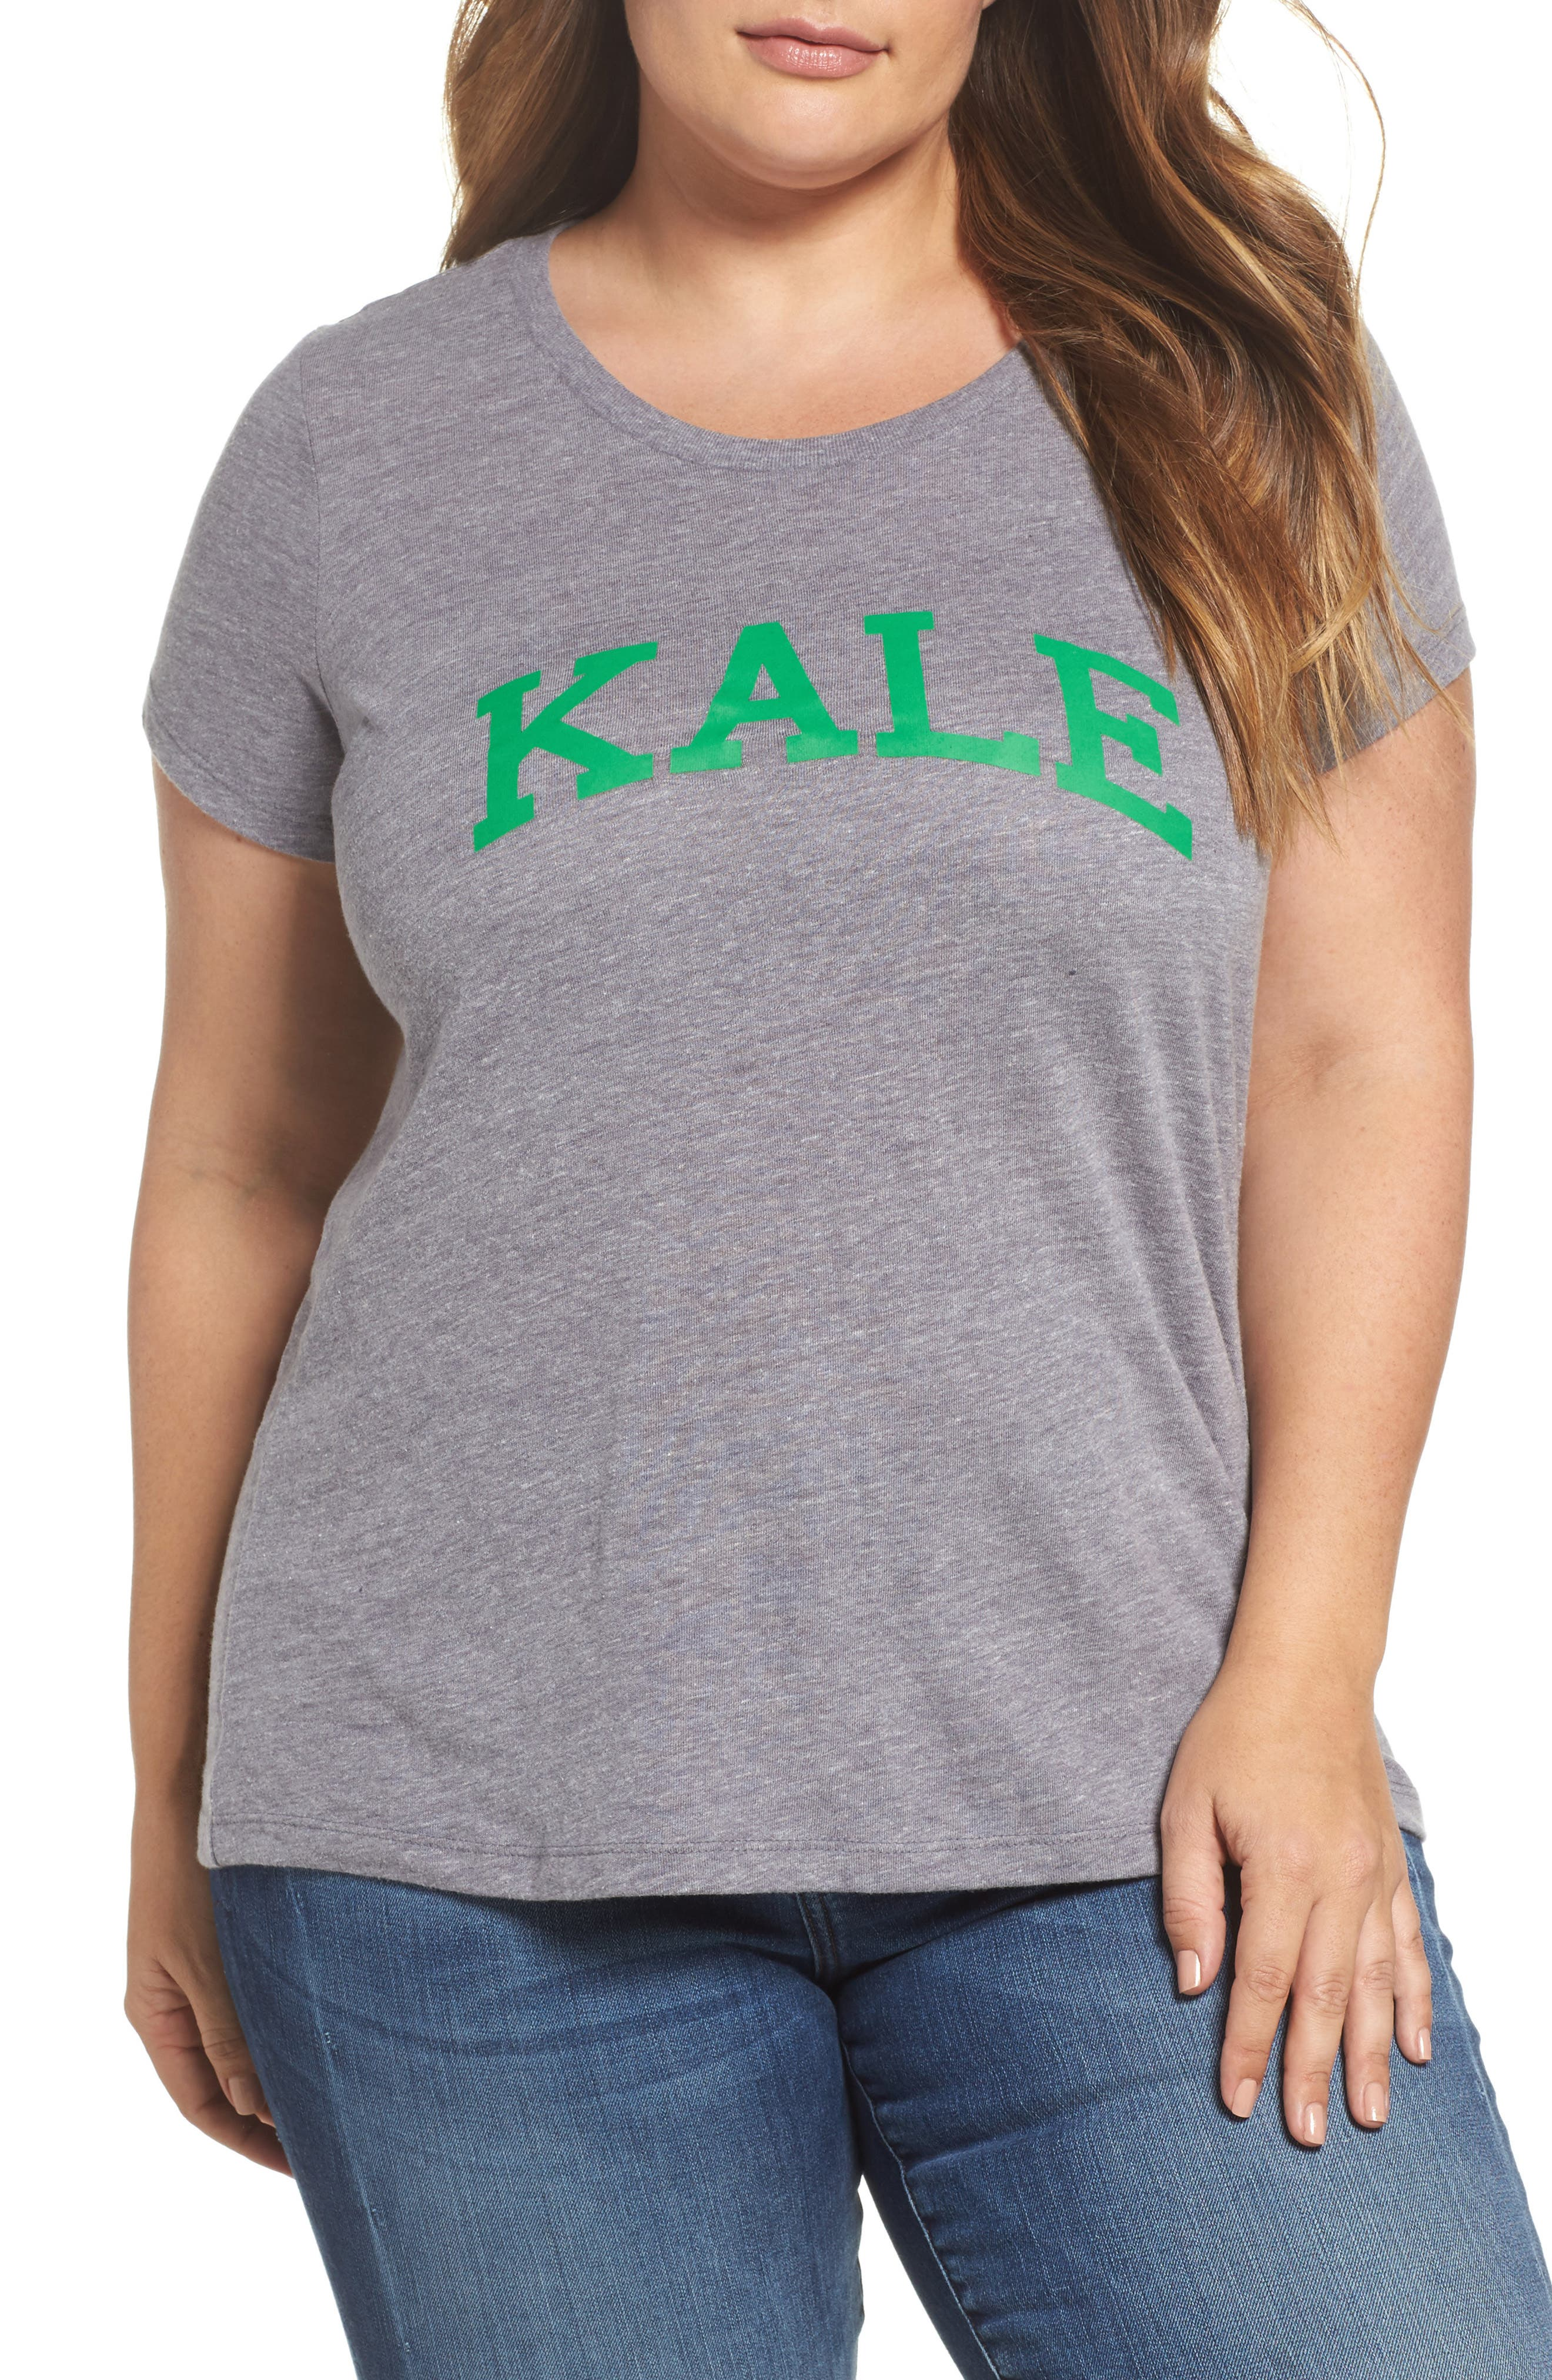 Kale Graphic Tee,                             Main thumbnail 1, color,                             Heather Grey